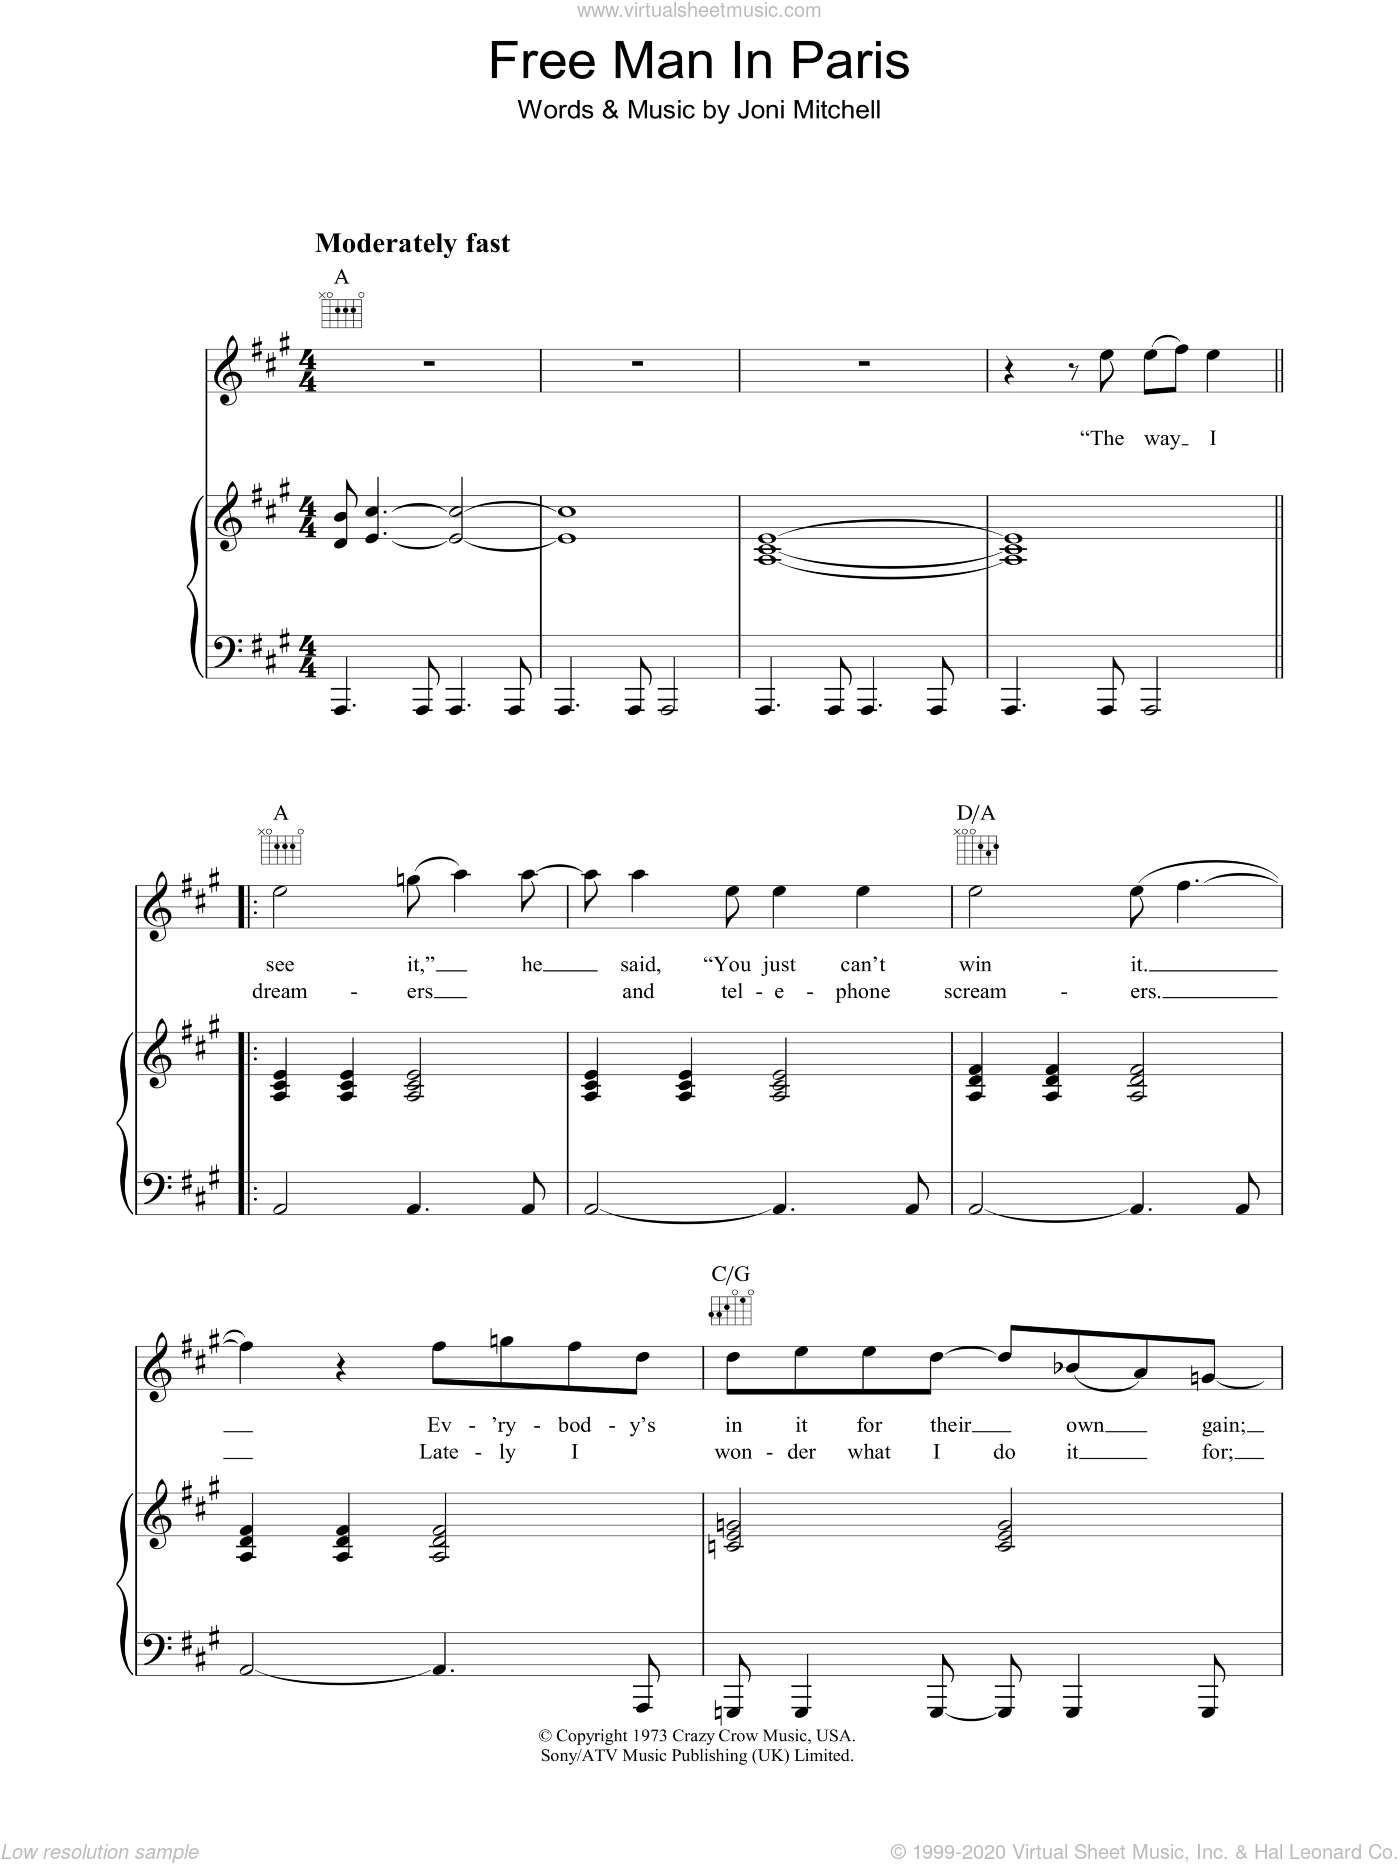 Free Man In Paris sheet music for voice, piano or guitar by Joni Mitchell. Score Image Preview.